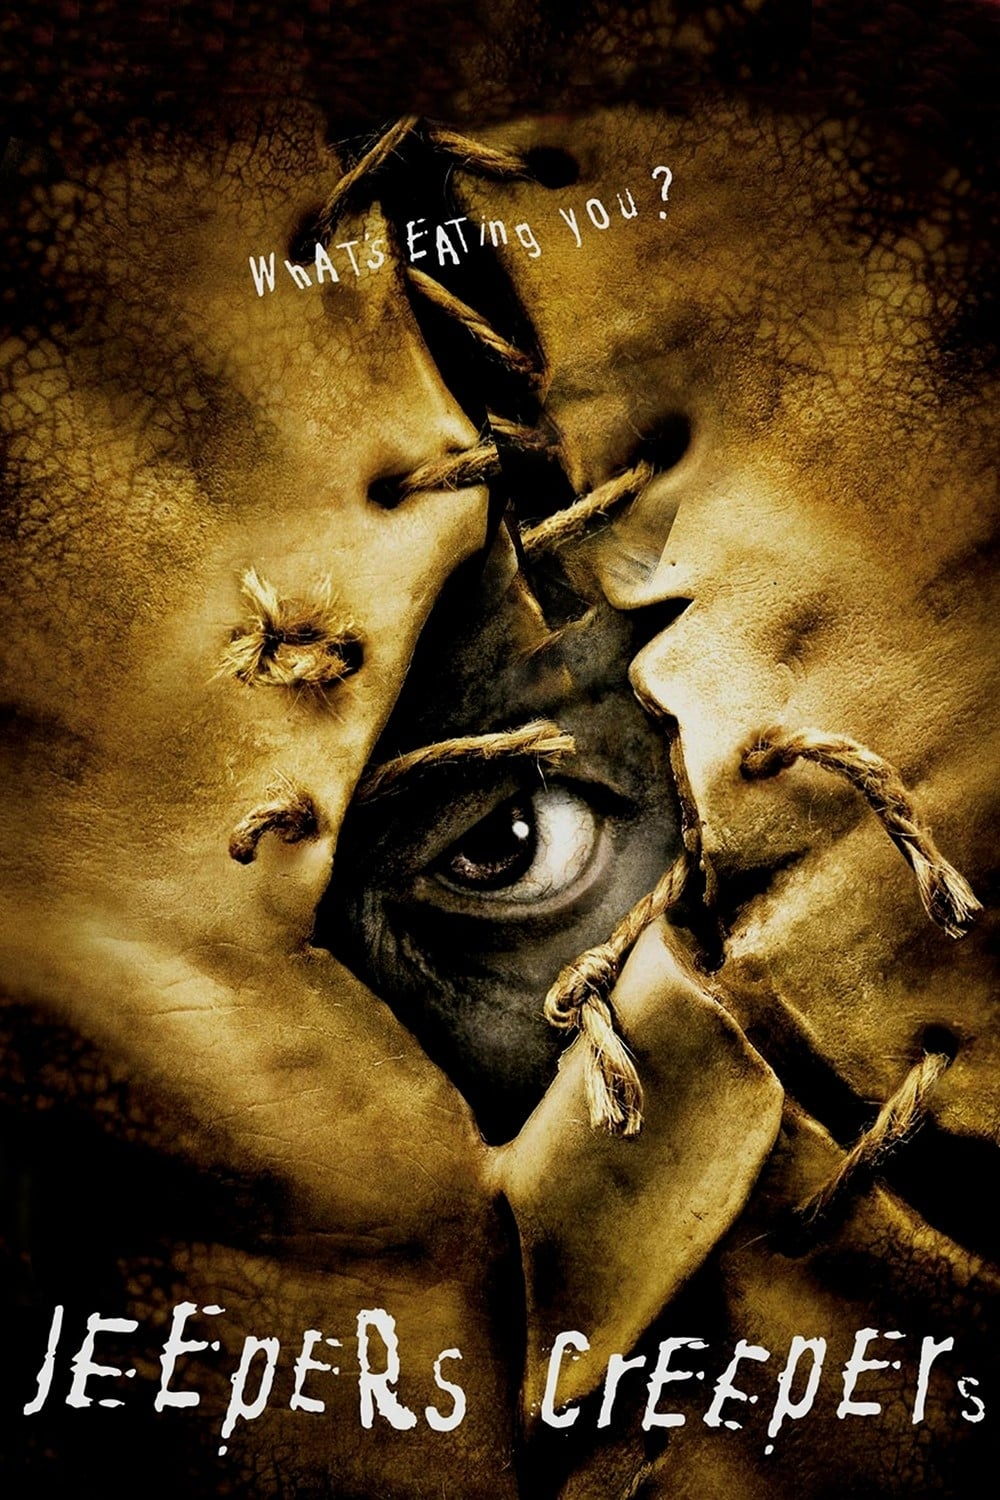 jeepers creepers 2 stream